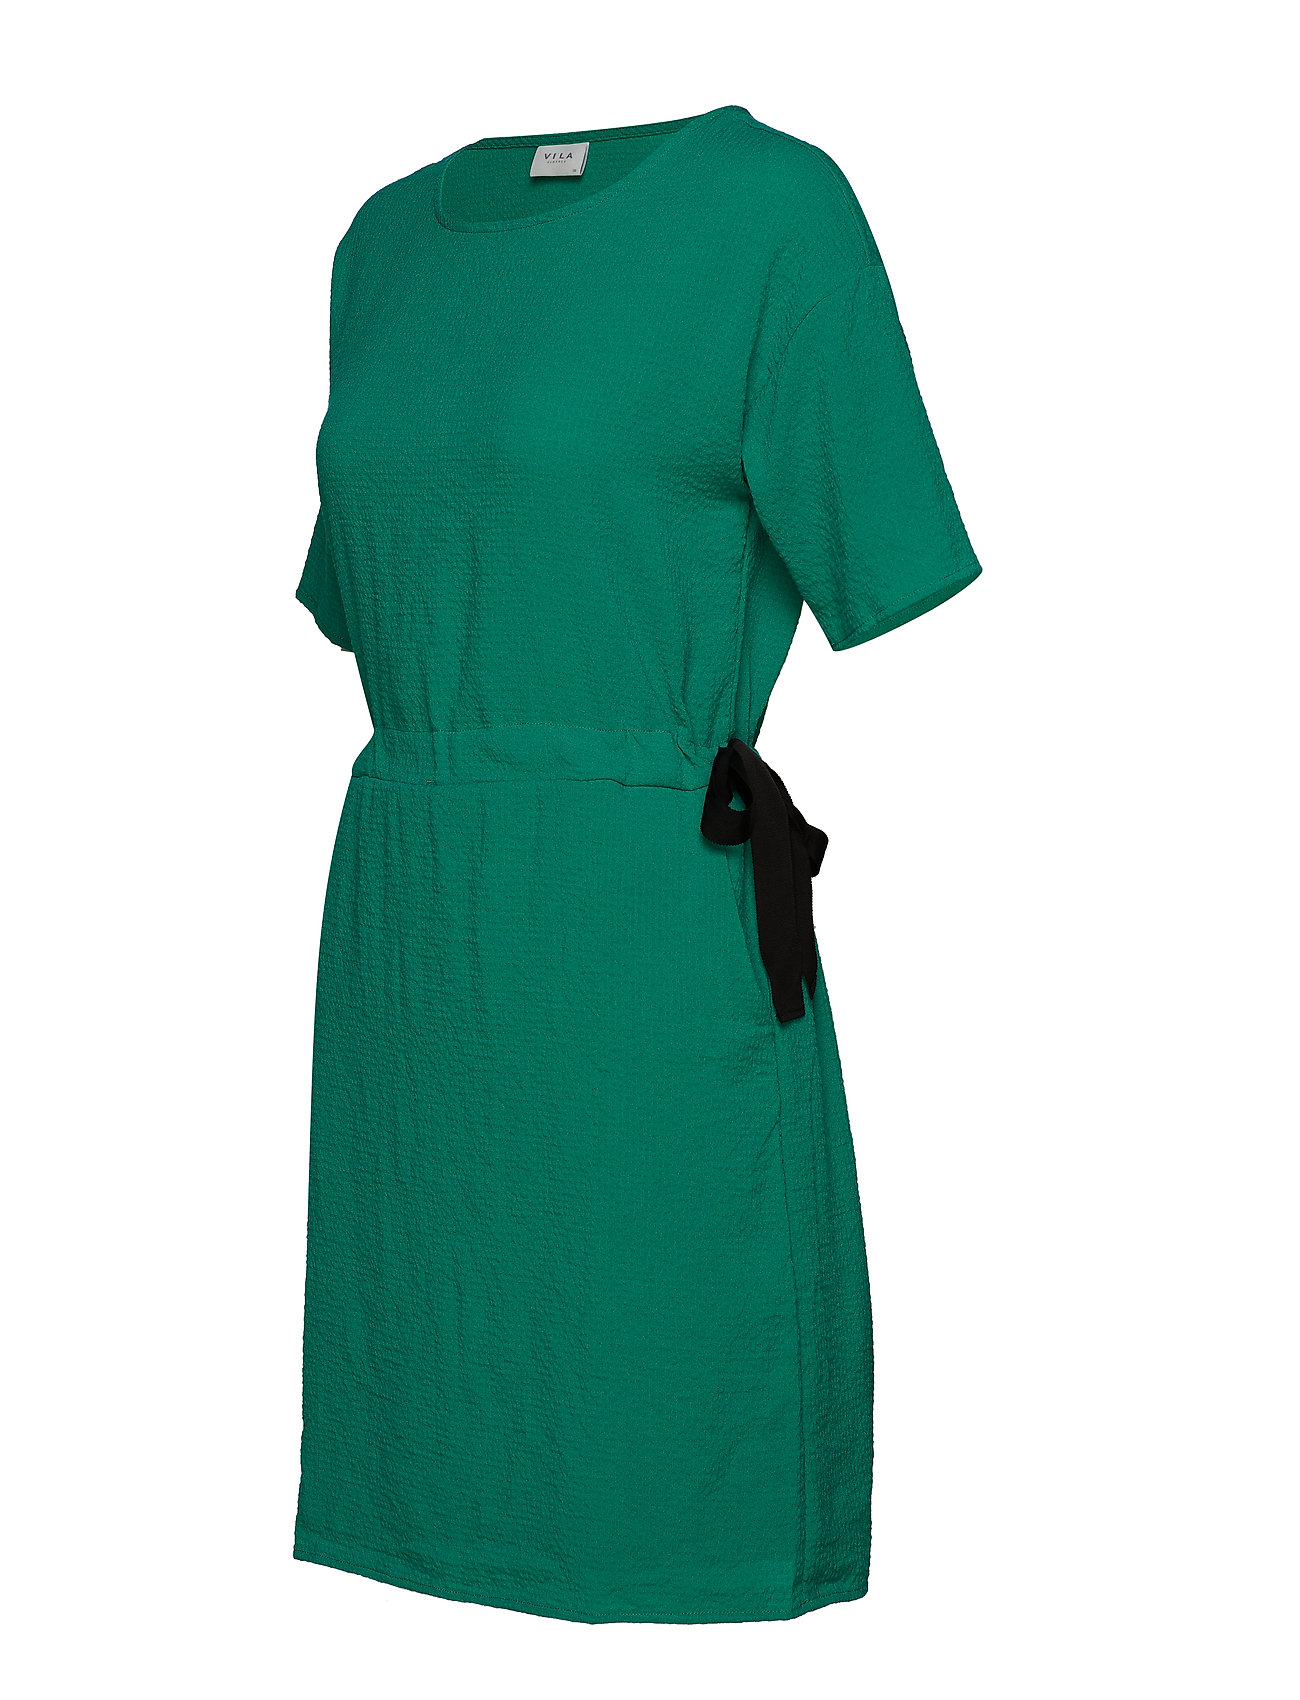 Vila - VILAMIDA 2/4 DRESS - short dresses - pepper green - 1